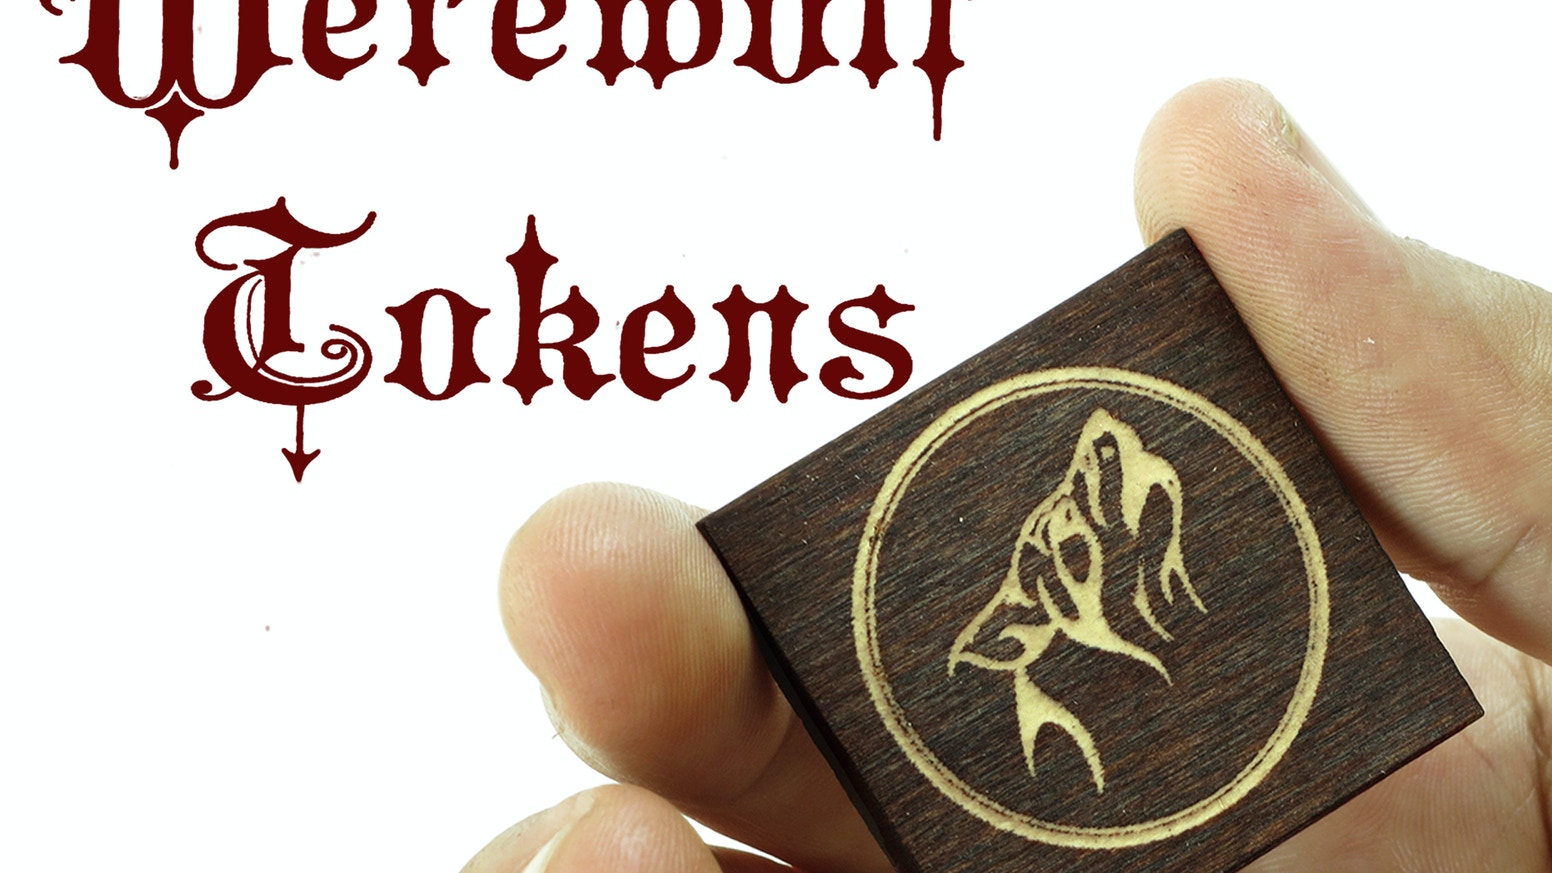 The hidden roles game you can custom laser engrave wood pieces.  Werewolf (Mafia, Vampire) game. All ages party game